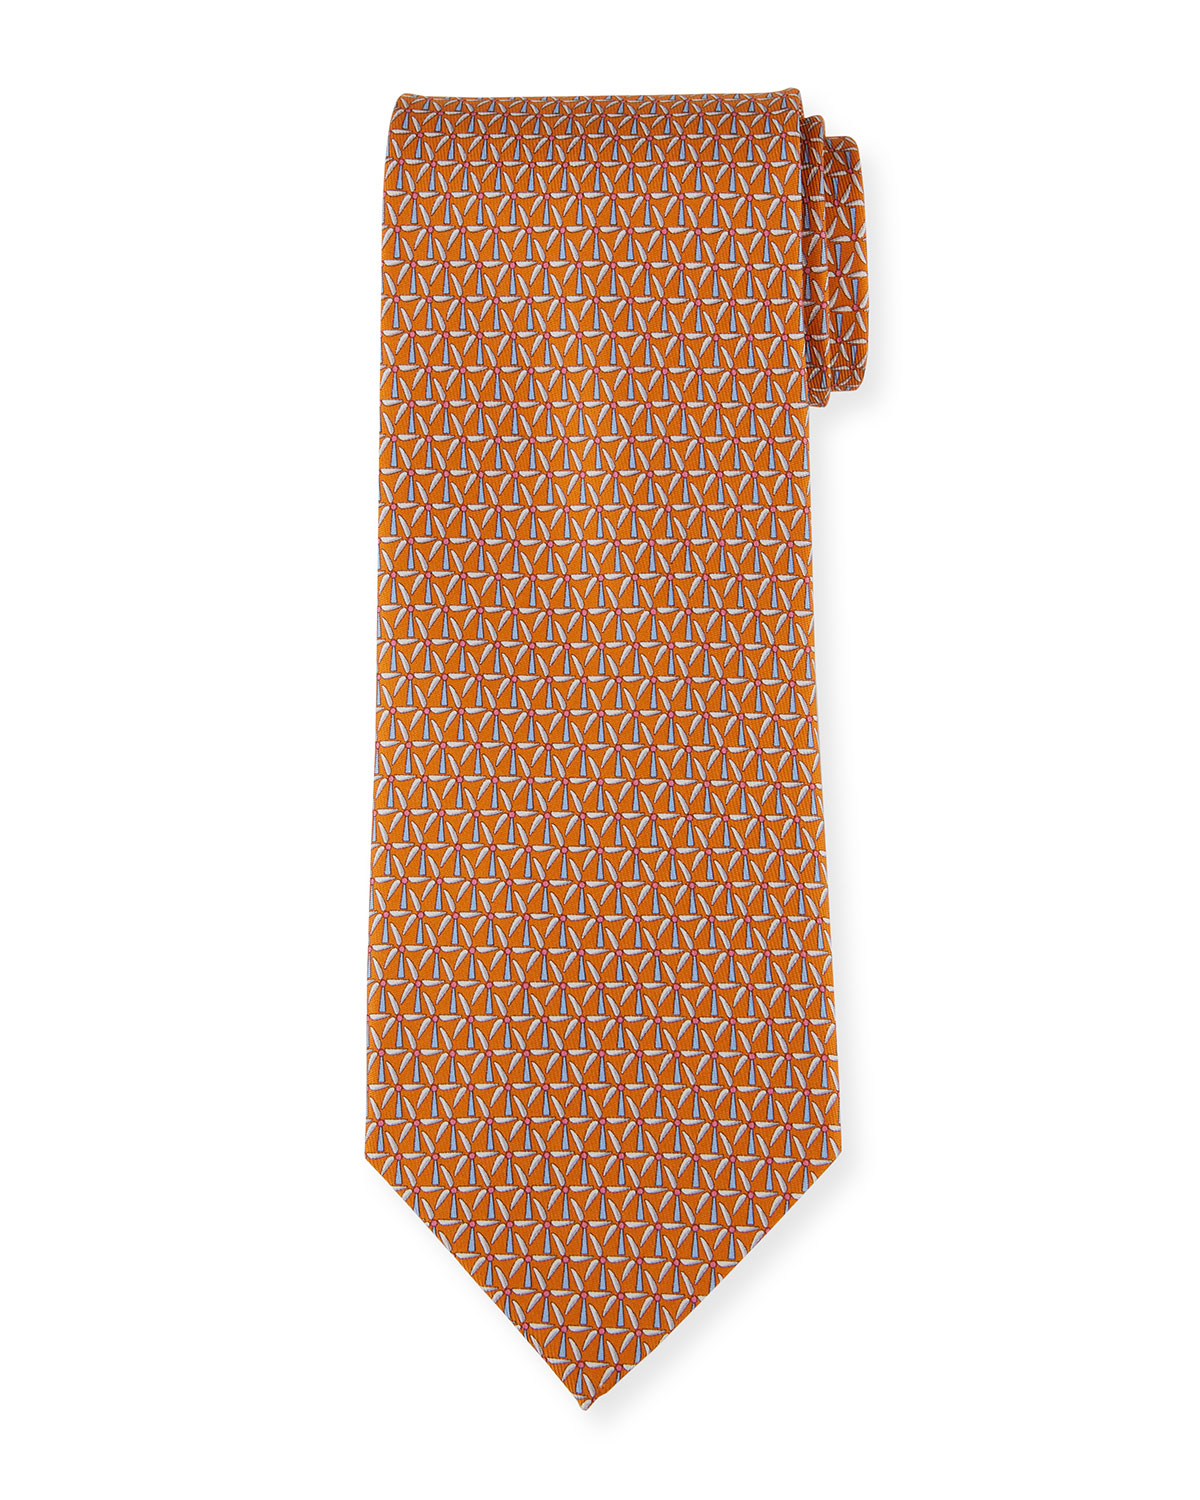 Salvatore Ferragamo Men's 4 Molina Patterned Silk Tie